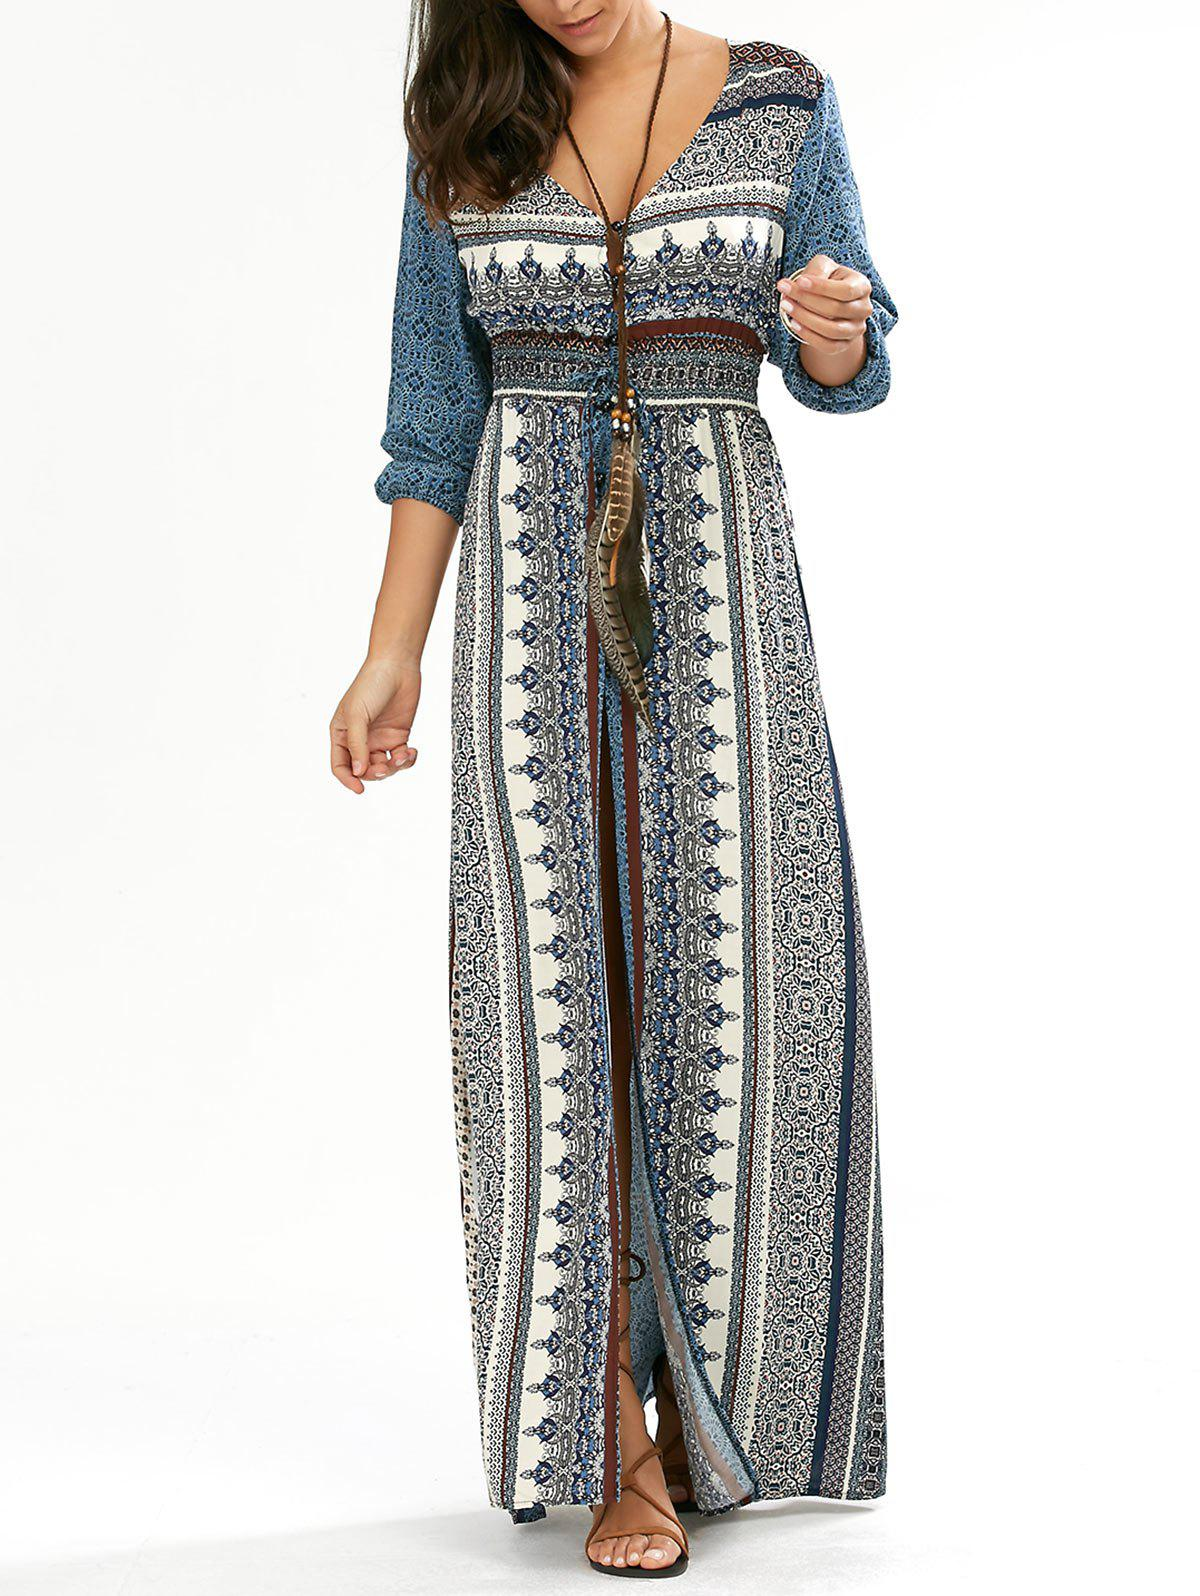 Blue Xl Boho Button Down Empire Waist Maxi Dress With